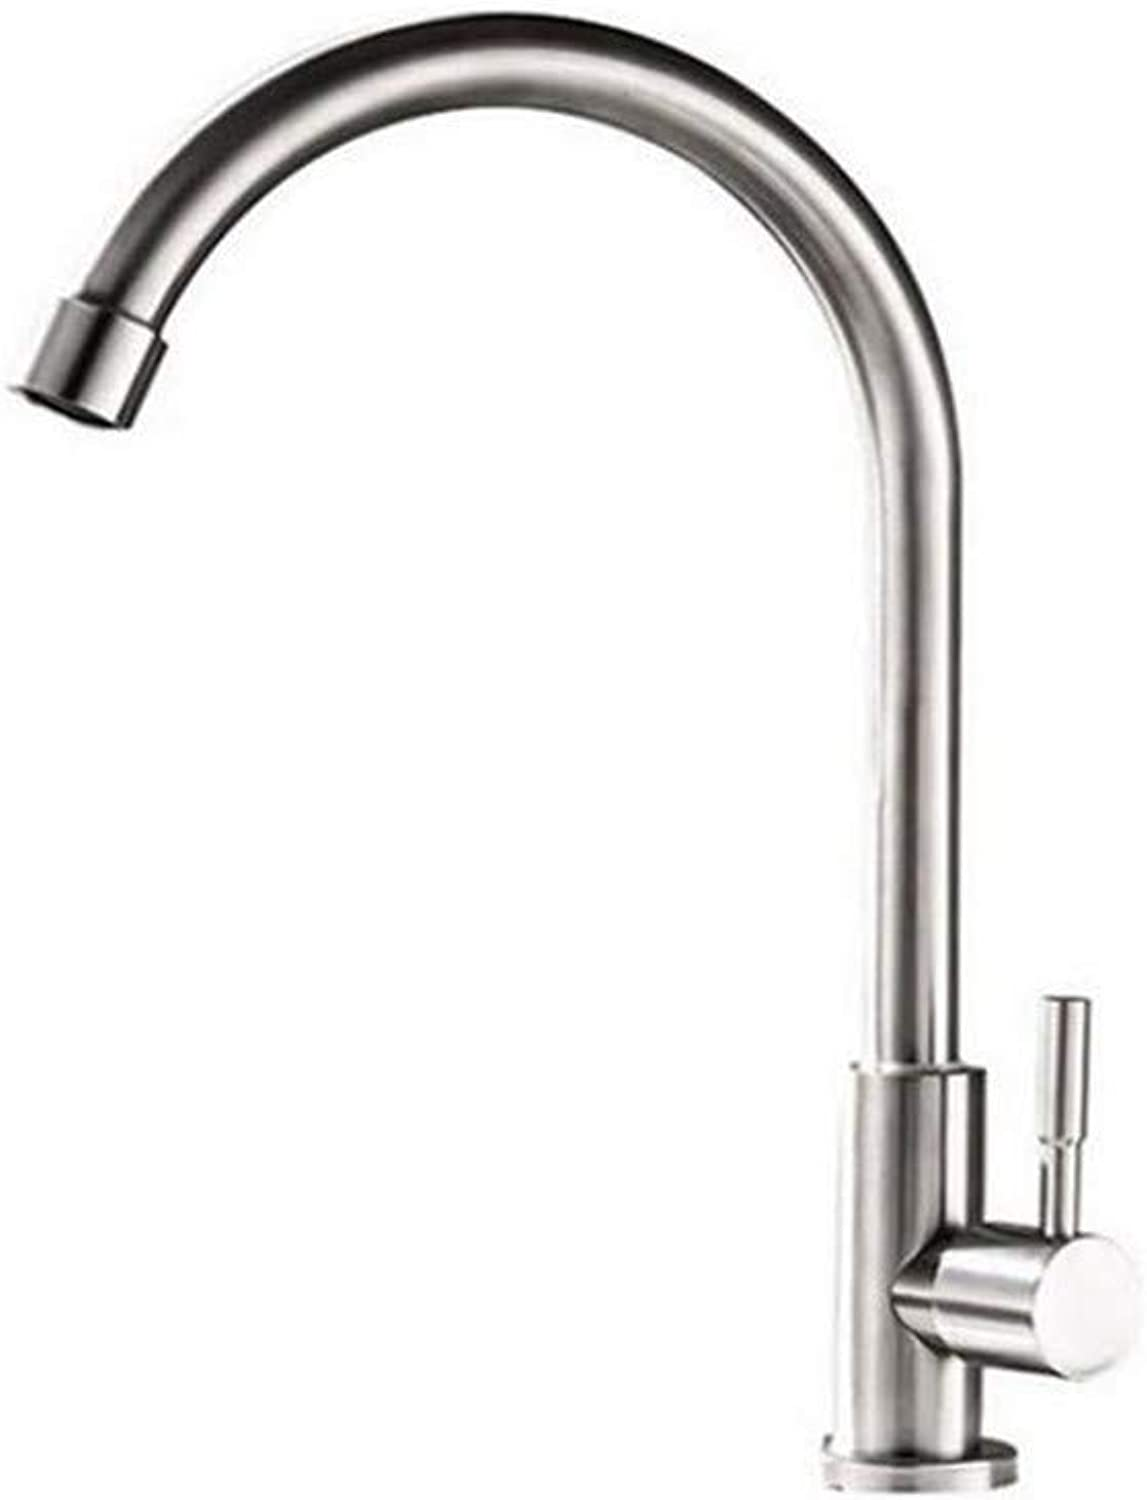 Vintage Chrome Brass Kitchen Kitchen Single Cold Water Faucet Washing Basin redatable greenical Single Balcony Stainless Steel Washing Pool Faucet